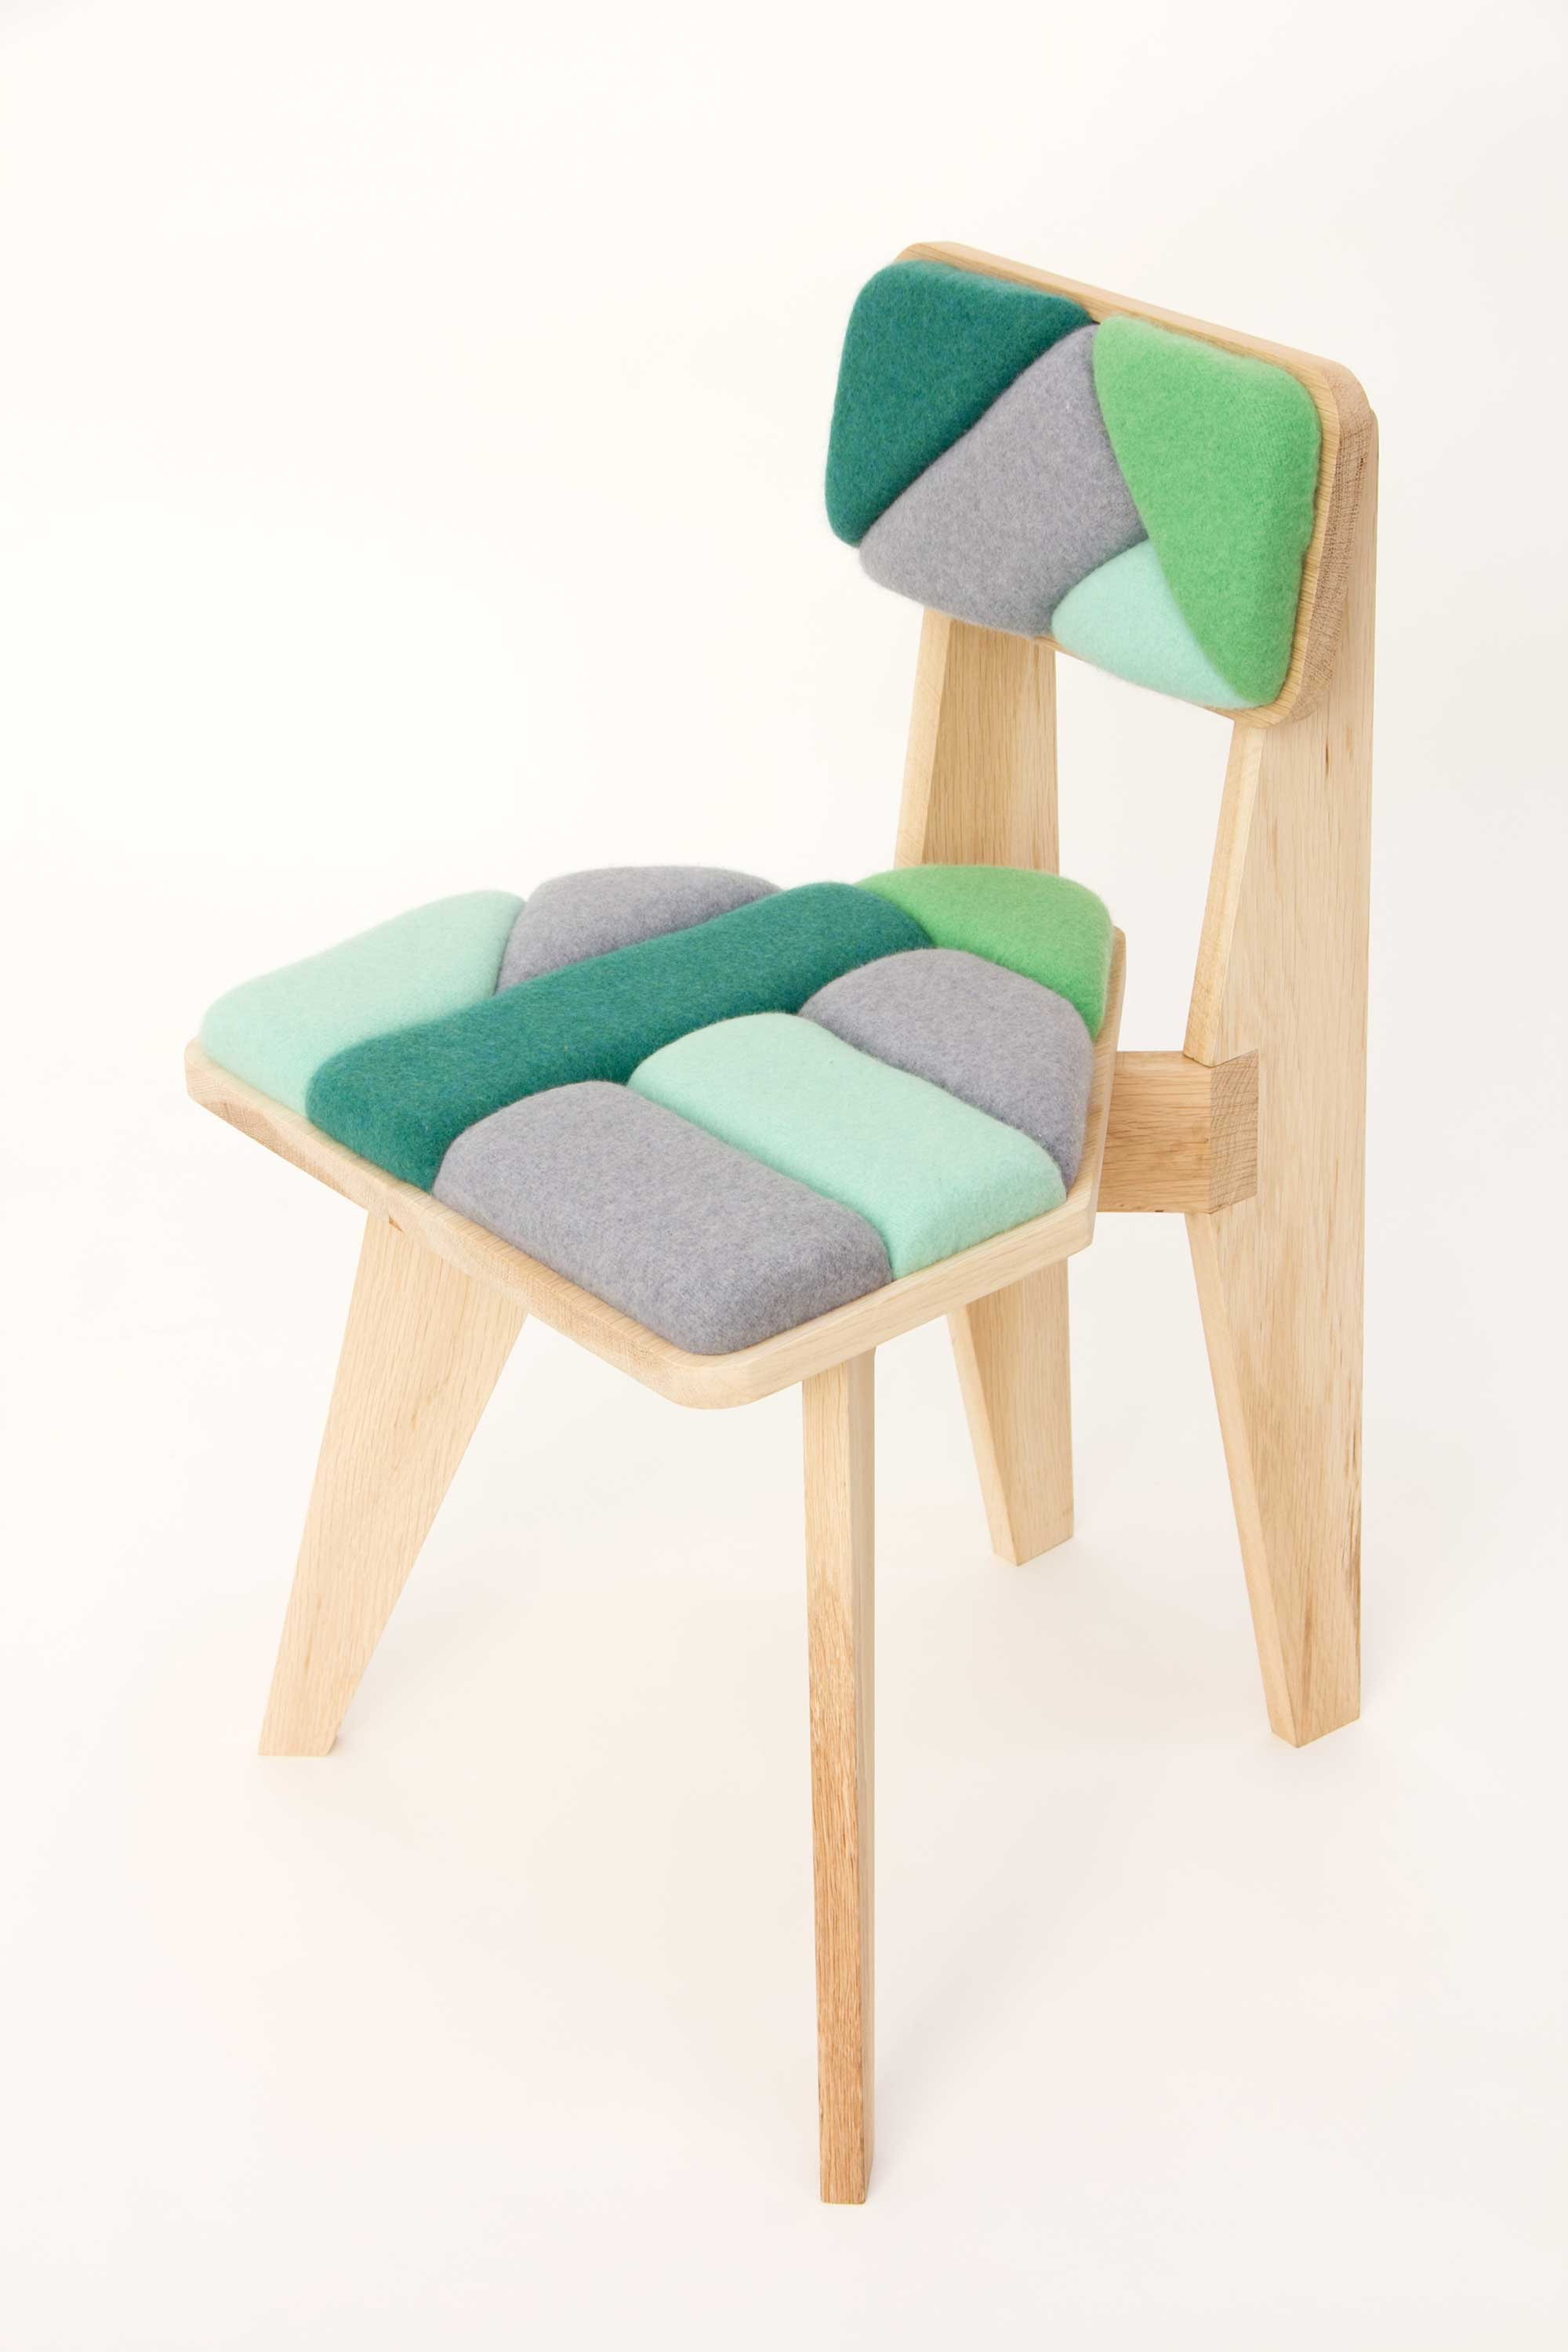 windchair_synthetic-green_logwood